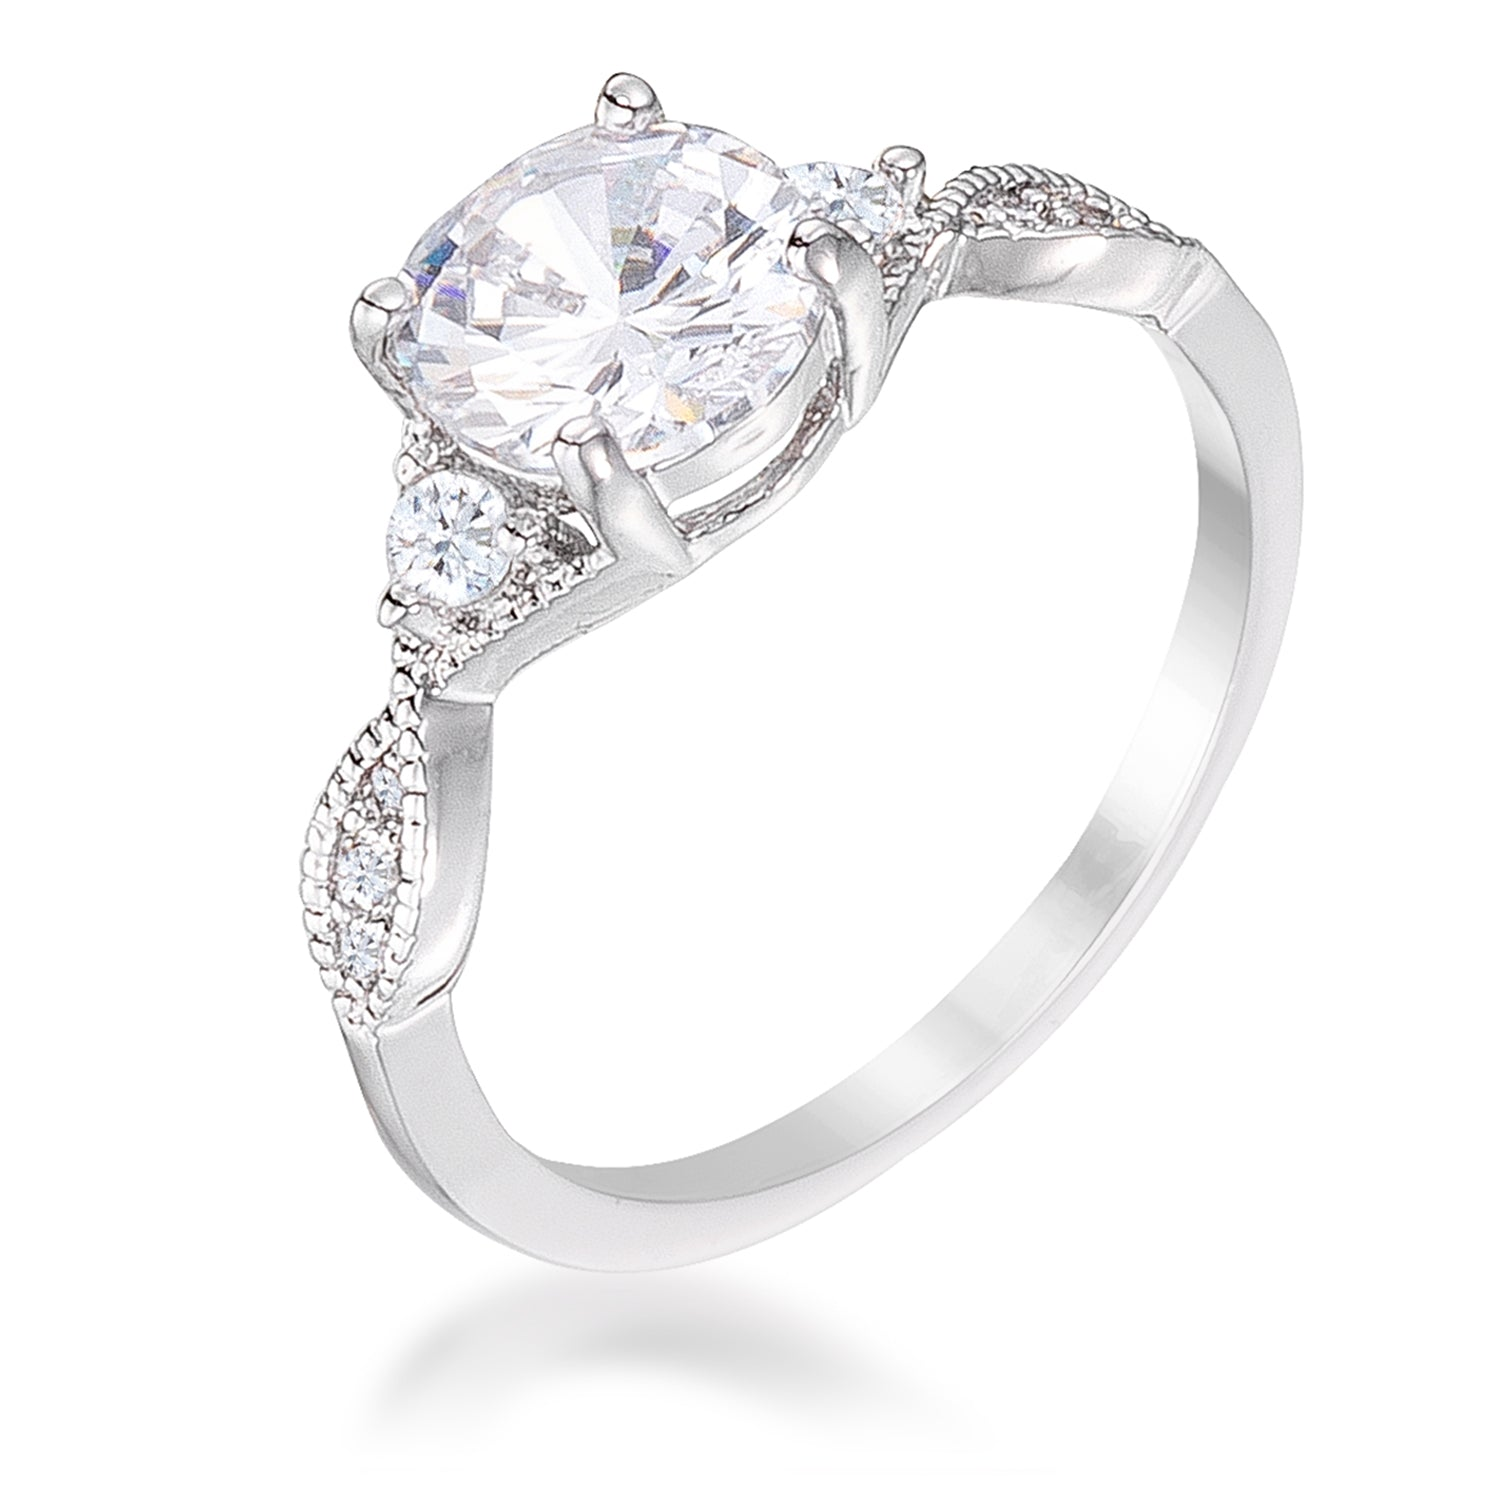 with garland shaped monique platinum crafted inspired hand pin diamond rings this petal in is diamonds ring lhuillier mayor set enduring engagement pattern marquise a floral